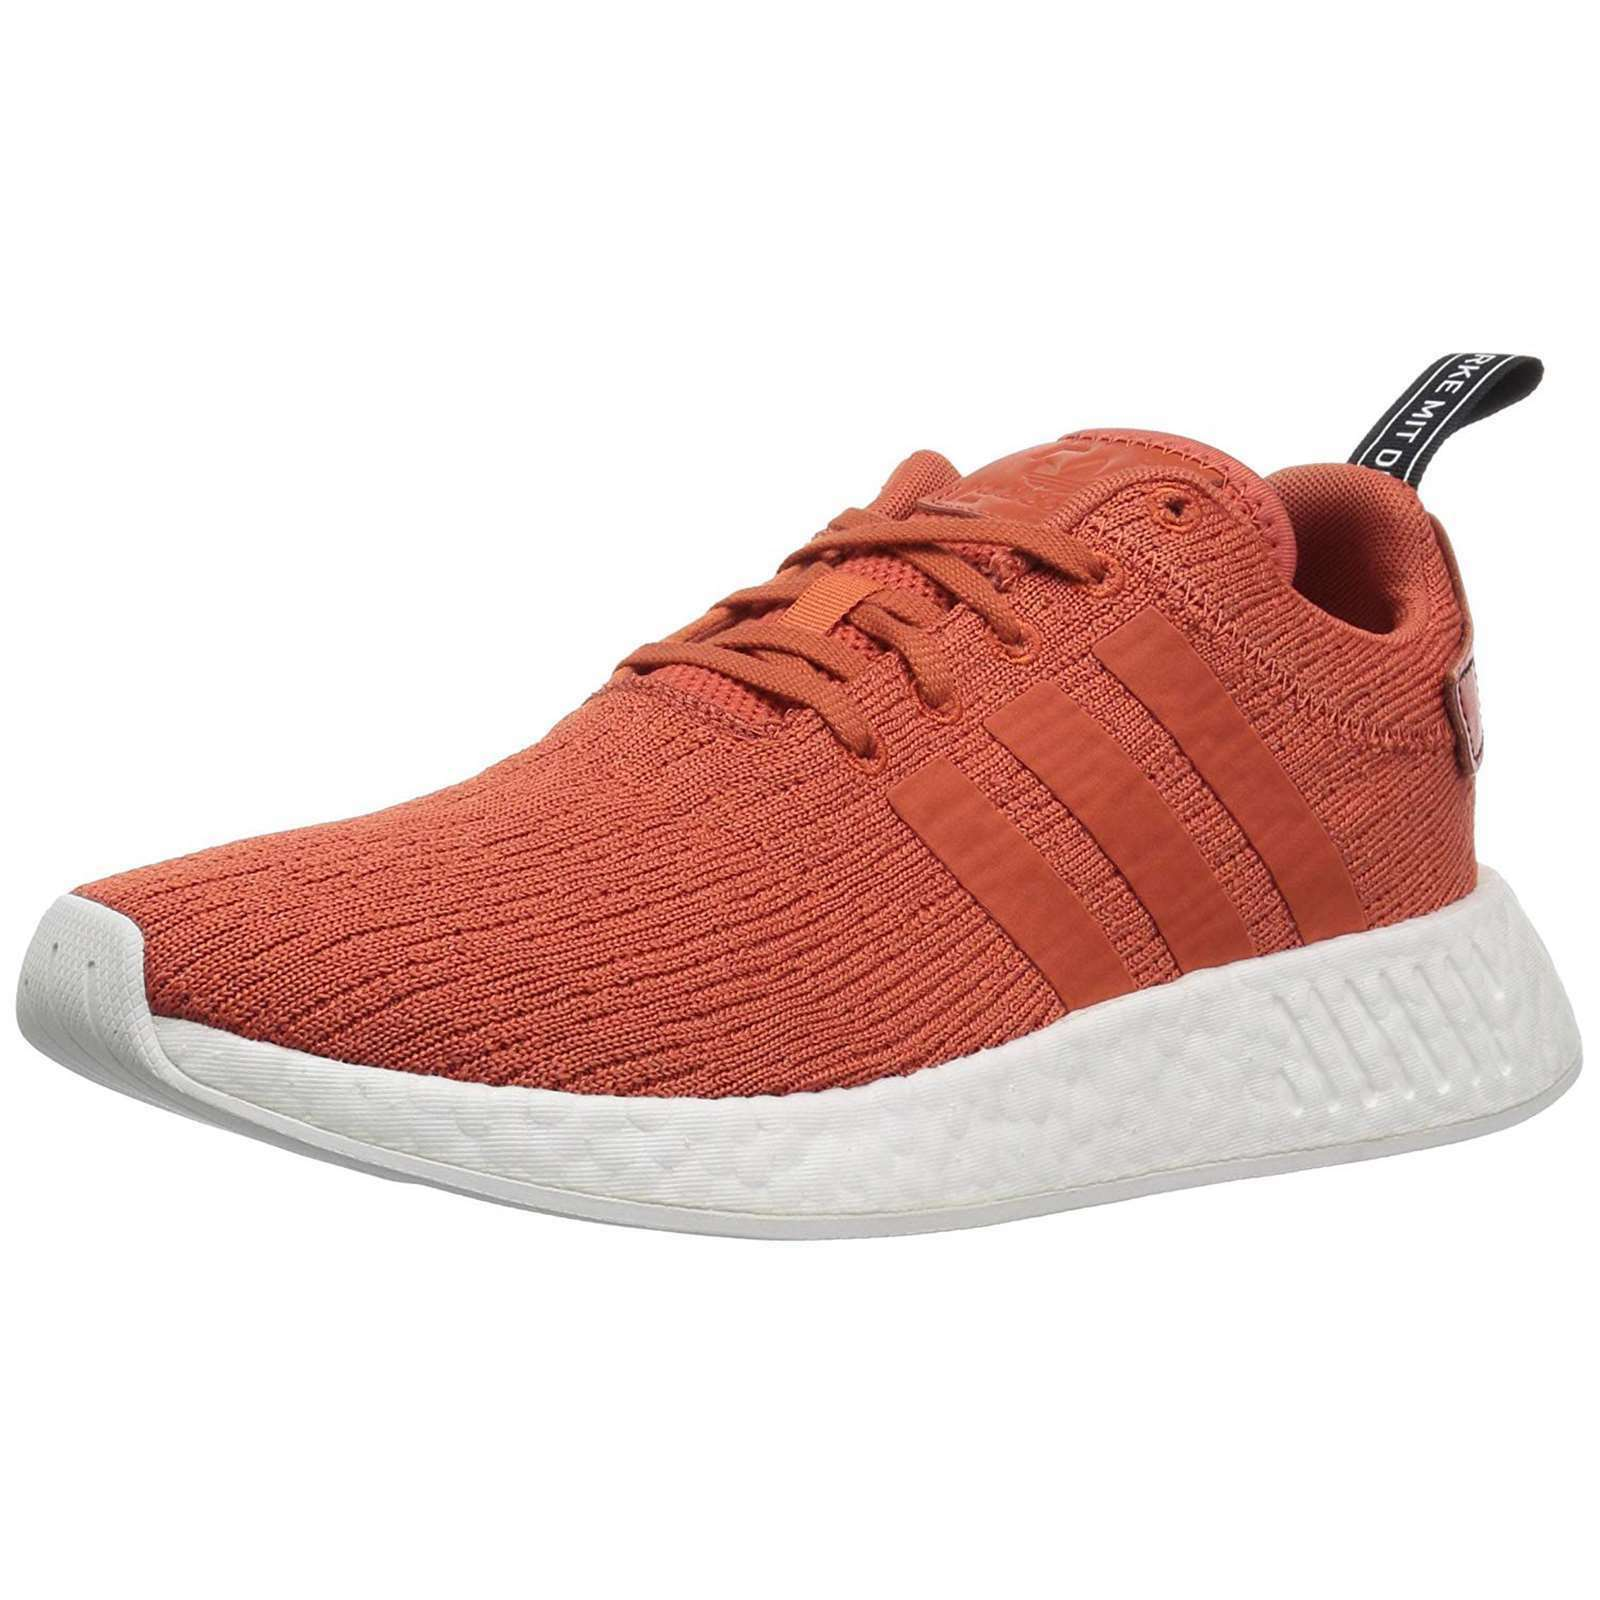 NEW Adidas Boost Men's Athletic Schuhes NMD Traning R2 Prime Knit Running Traning NMD Sneakers 277b7b